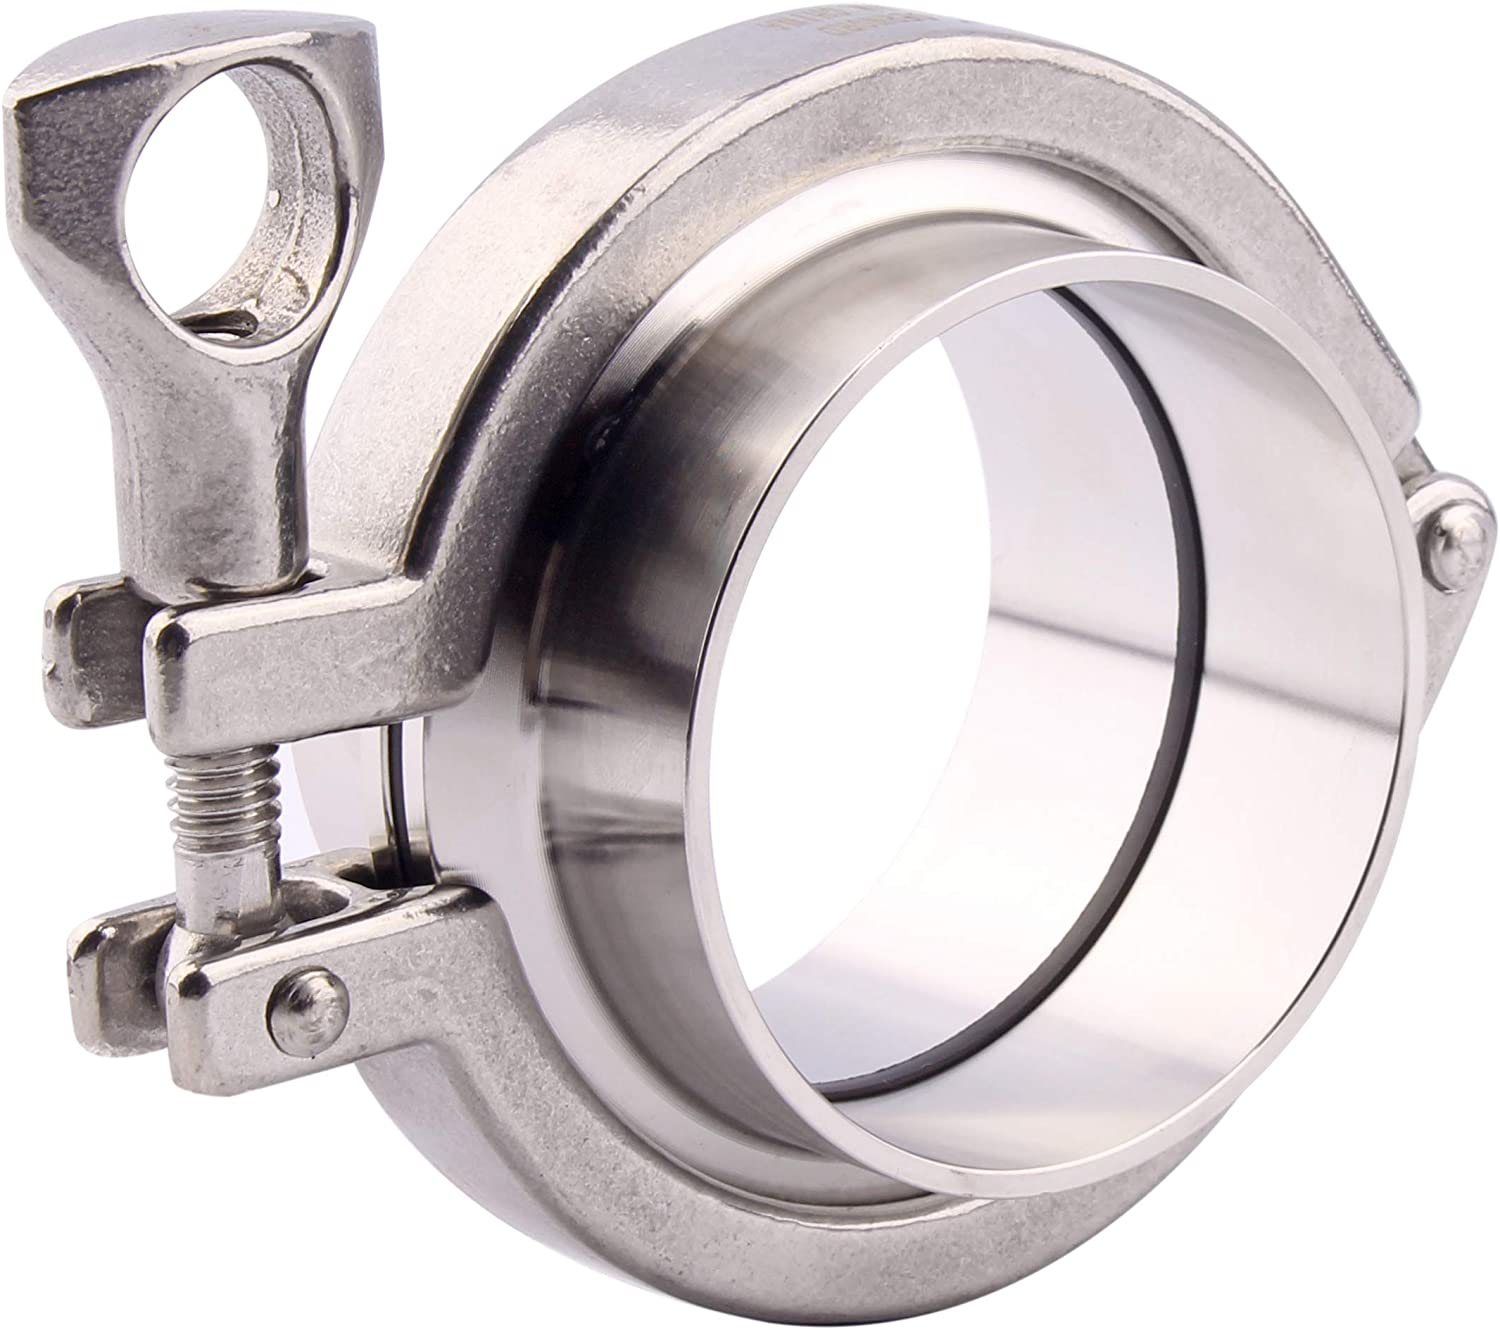 Tube OD: 6 DERNORD Stainless Steel Sanitary Clamp Single Pin Tri Clamps Clover